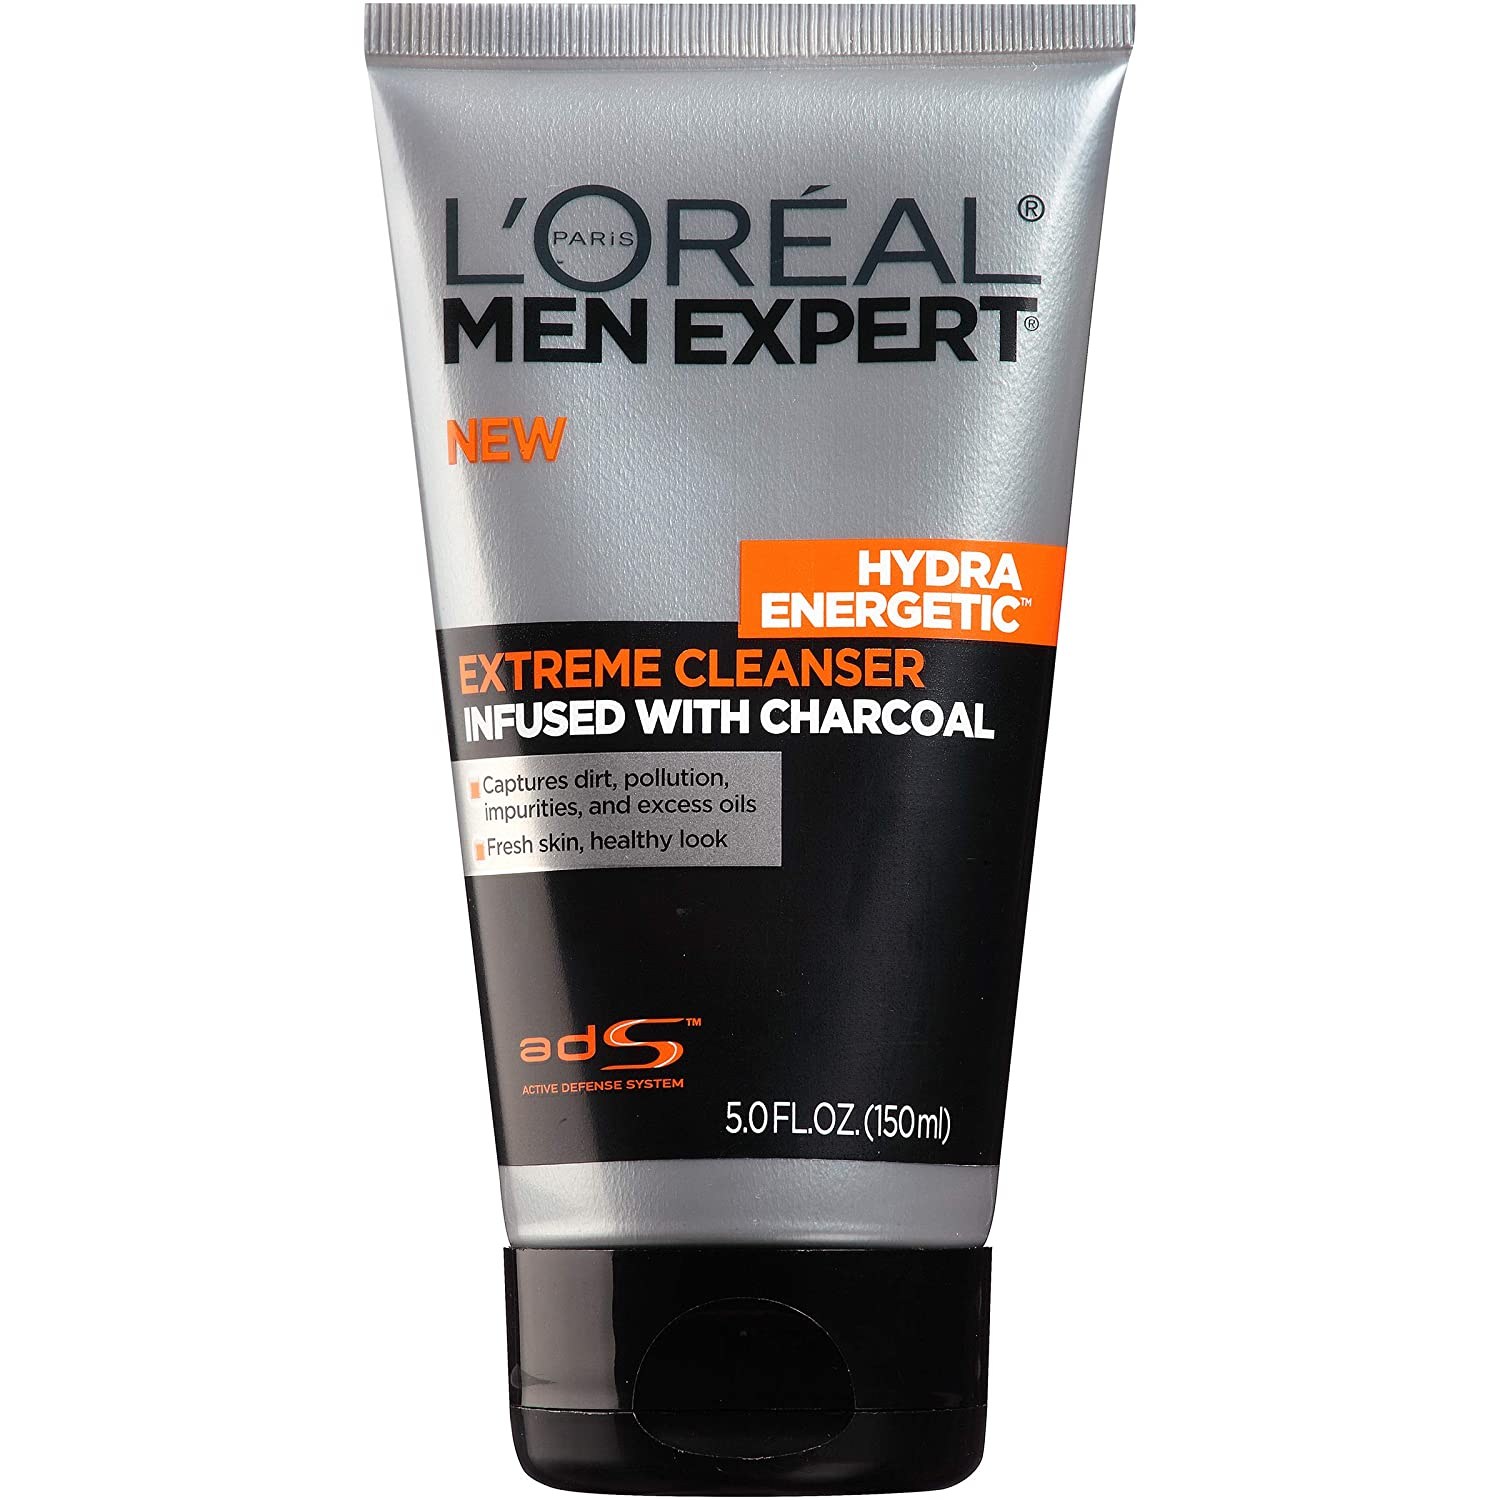 L'Oreal Paris Skincare Men Expert Hydra Energetic Facial Cleanser with Charcoal